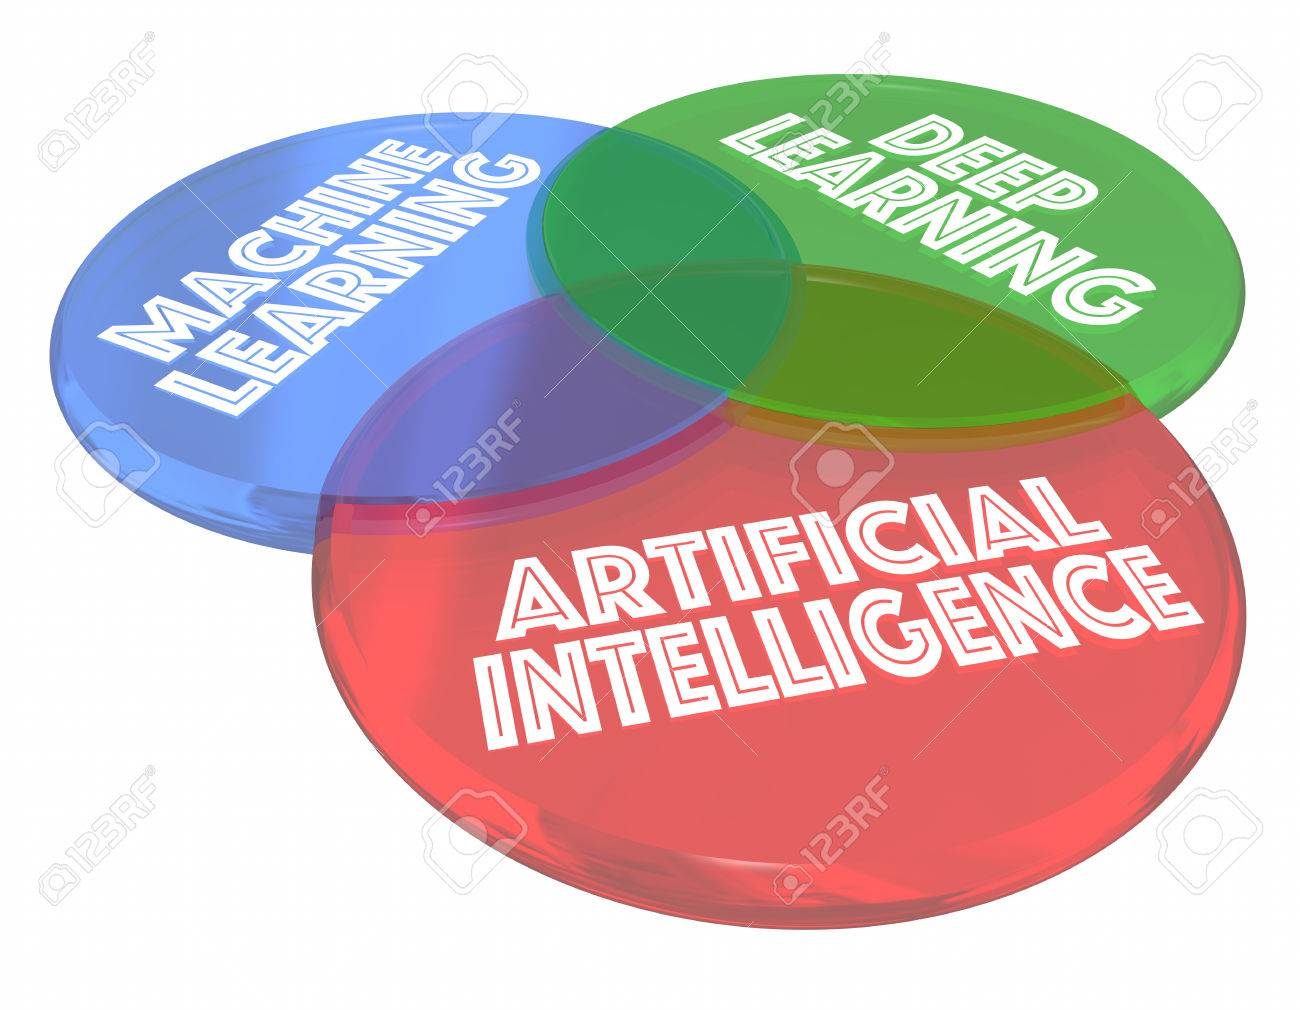 Machine deep learning ai artificial intelligence venn diagram machine deep learning ai artificial intelligence venn diagram 3d illustration stock illustration 80416299 pooptronica Images